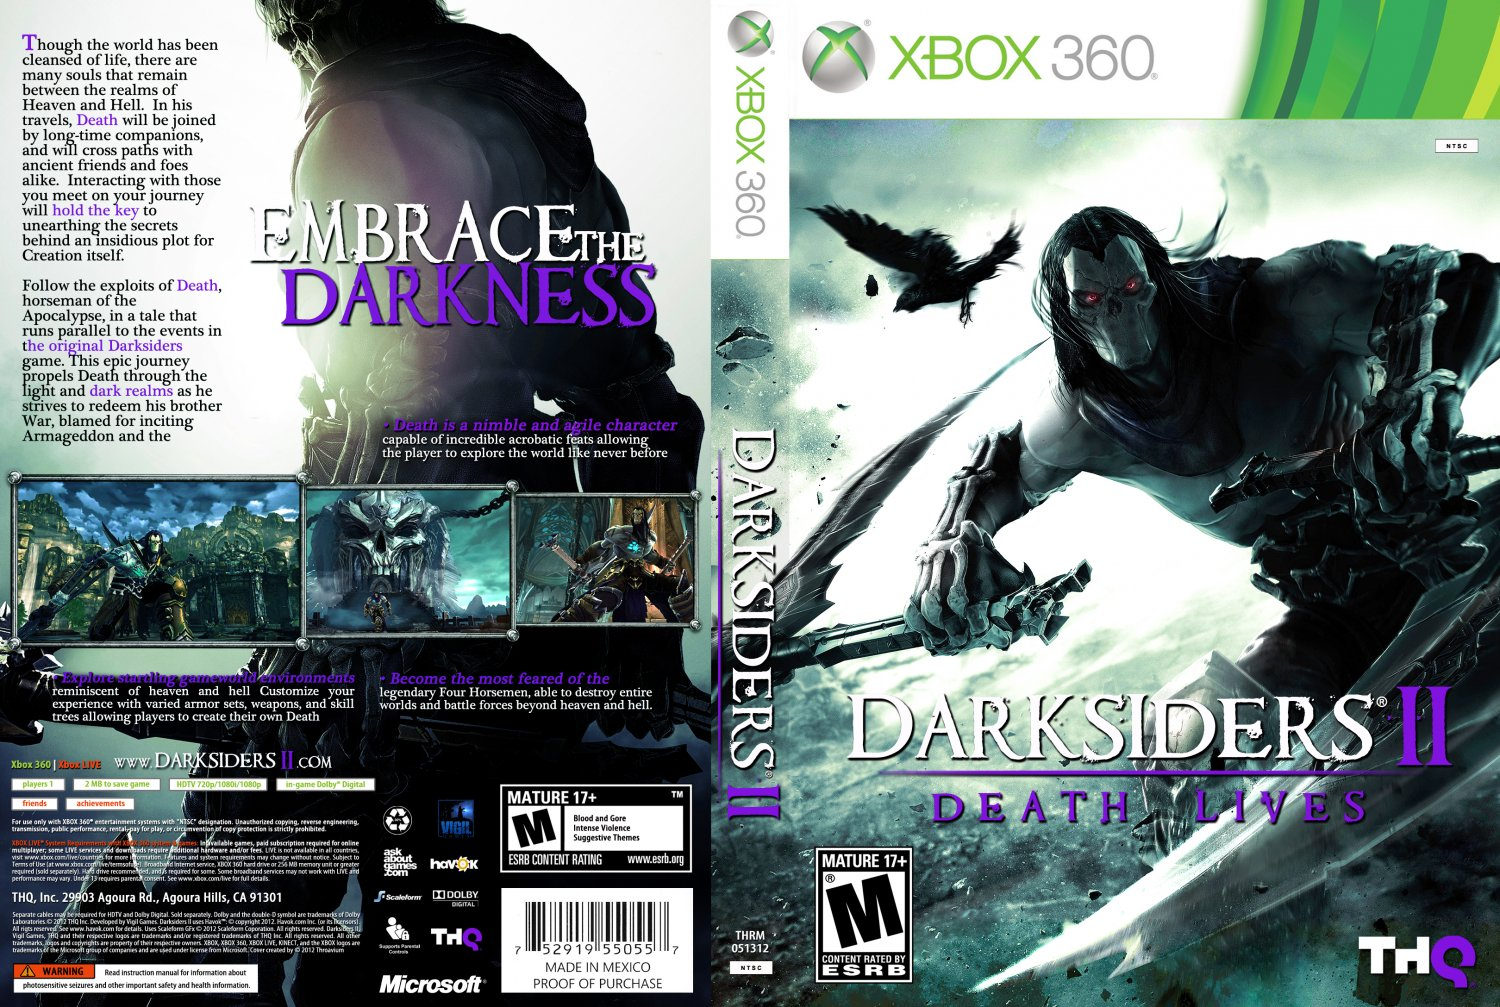 Darksiders II - XBOX 360 Game Covers - x360-thrm-dii-ntsc ...